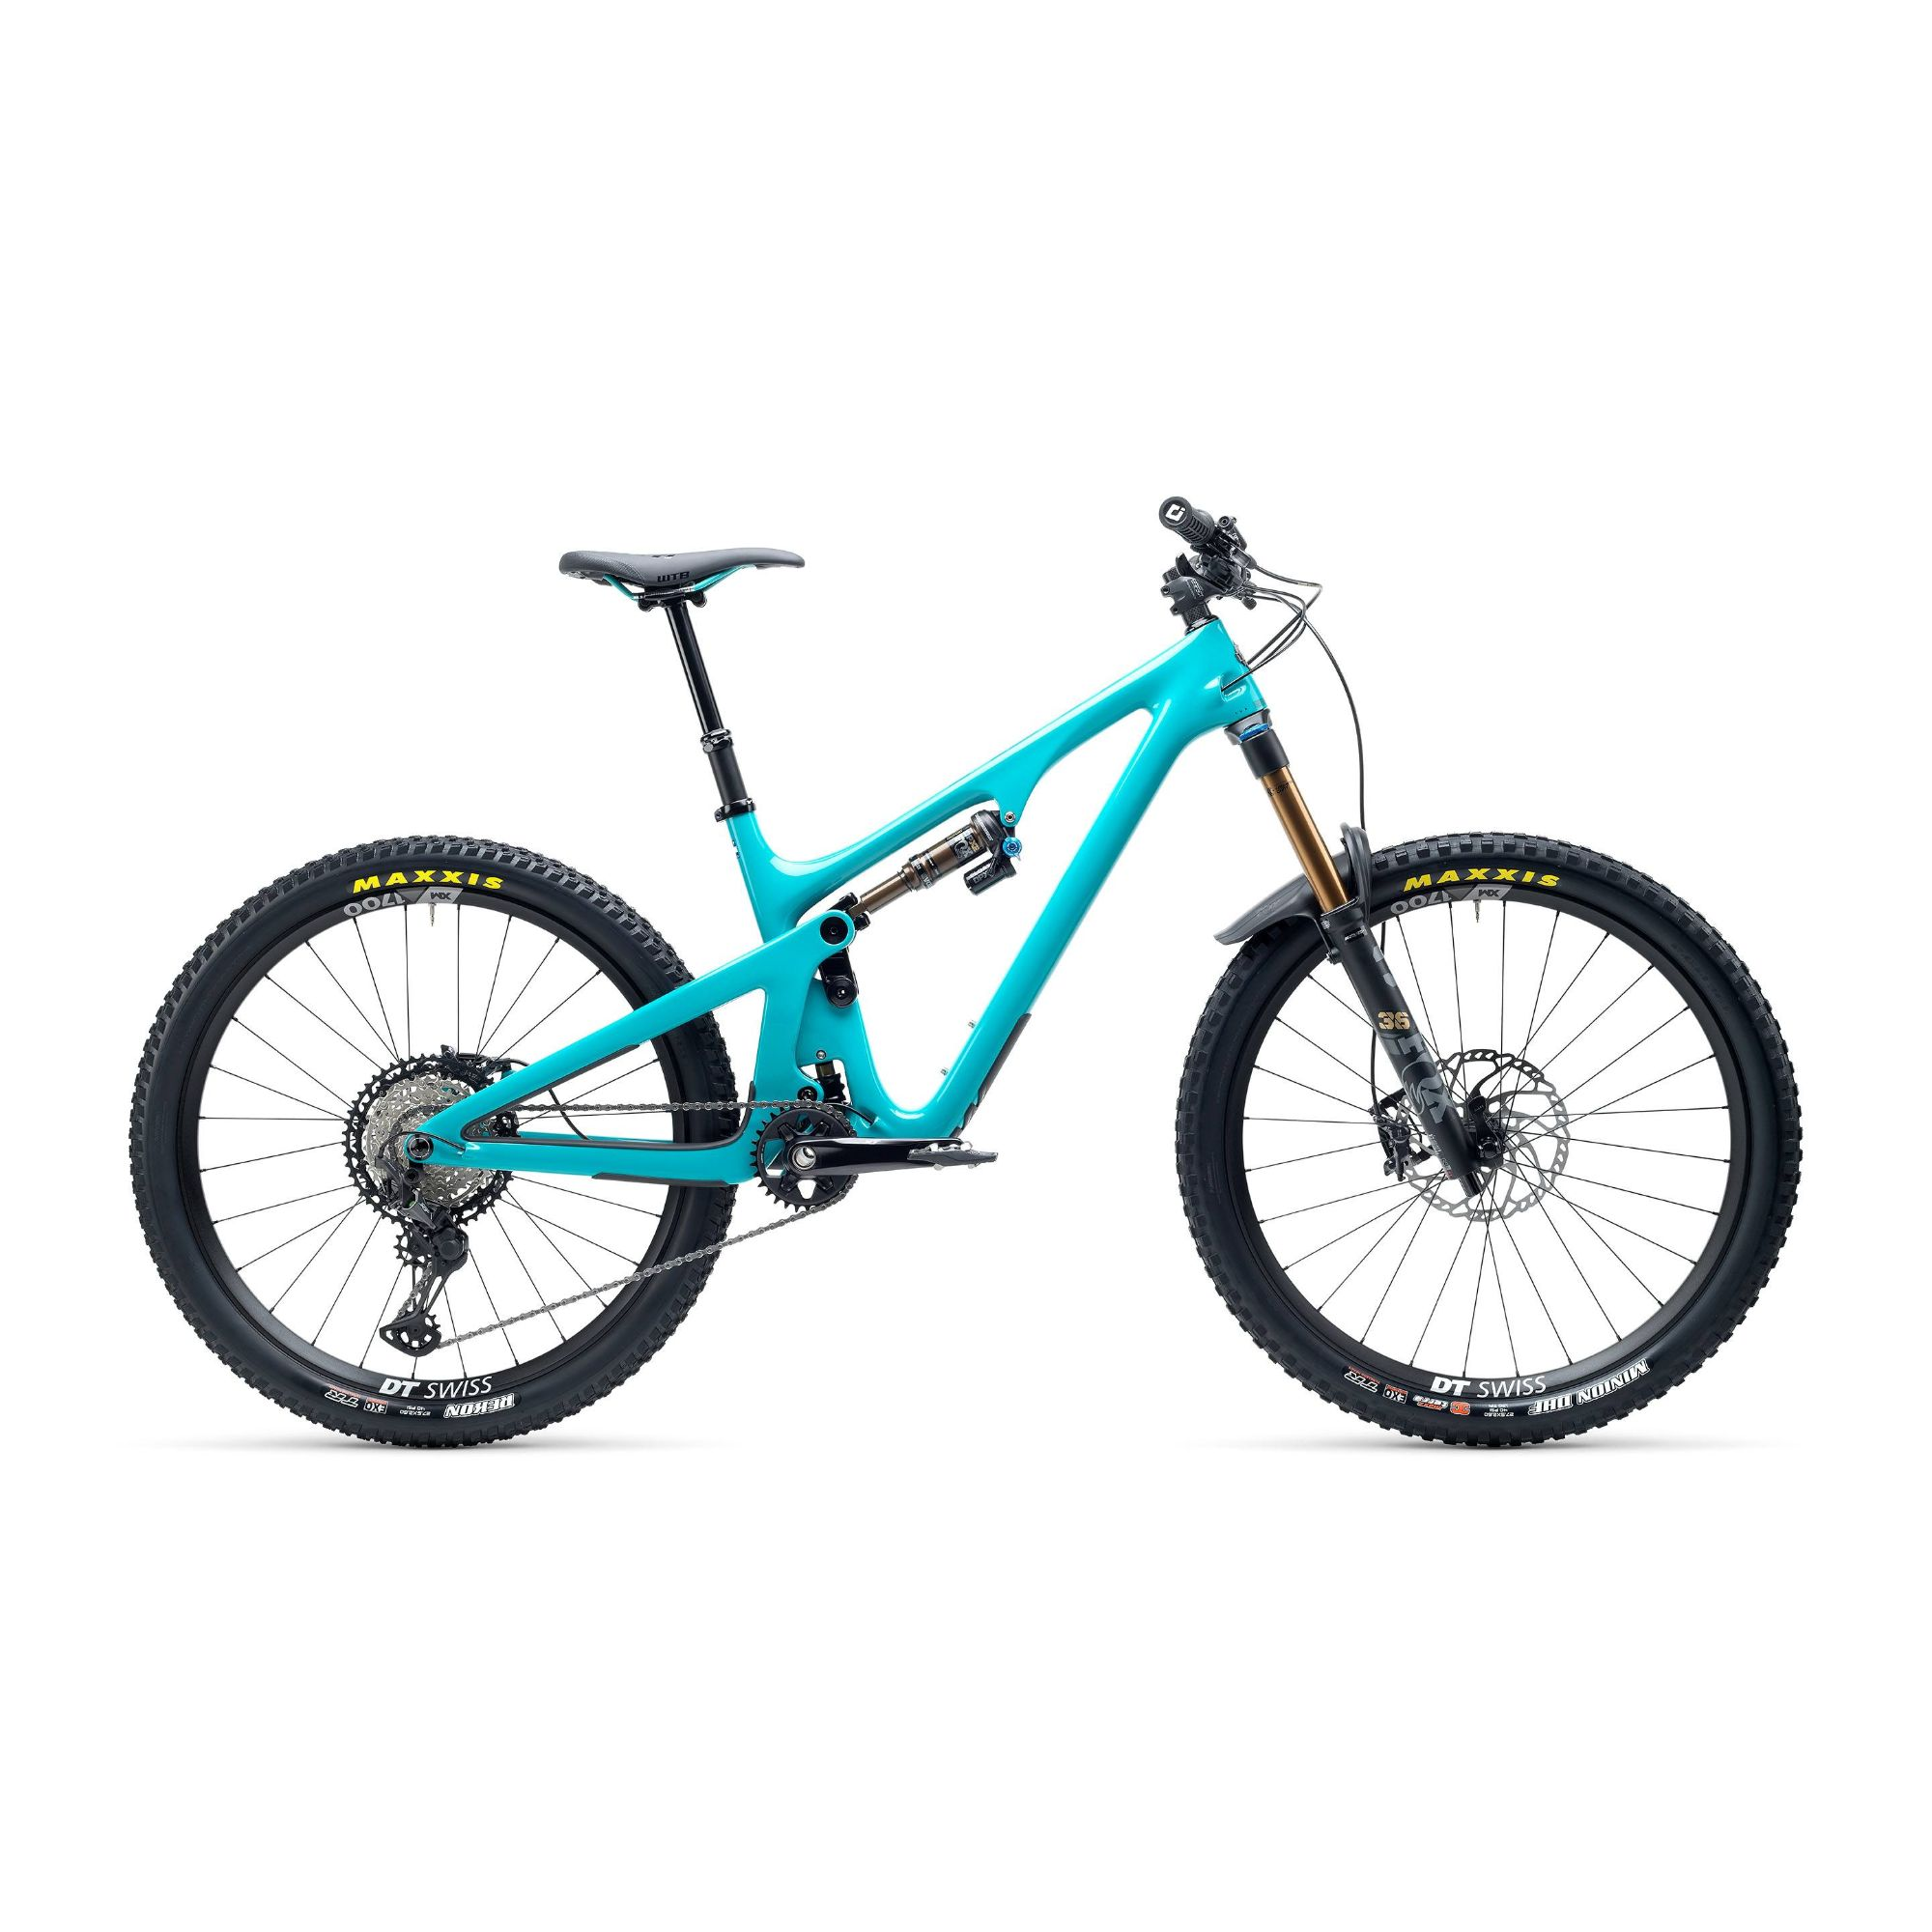 Yeti SB140 T Series T1 27.5  Shimano XT Carbon Mountain Bike 2021 Turq